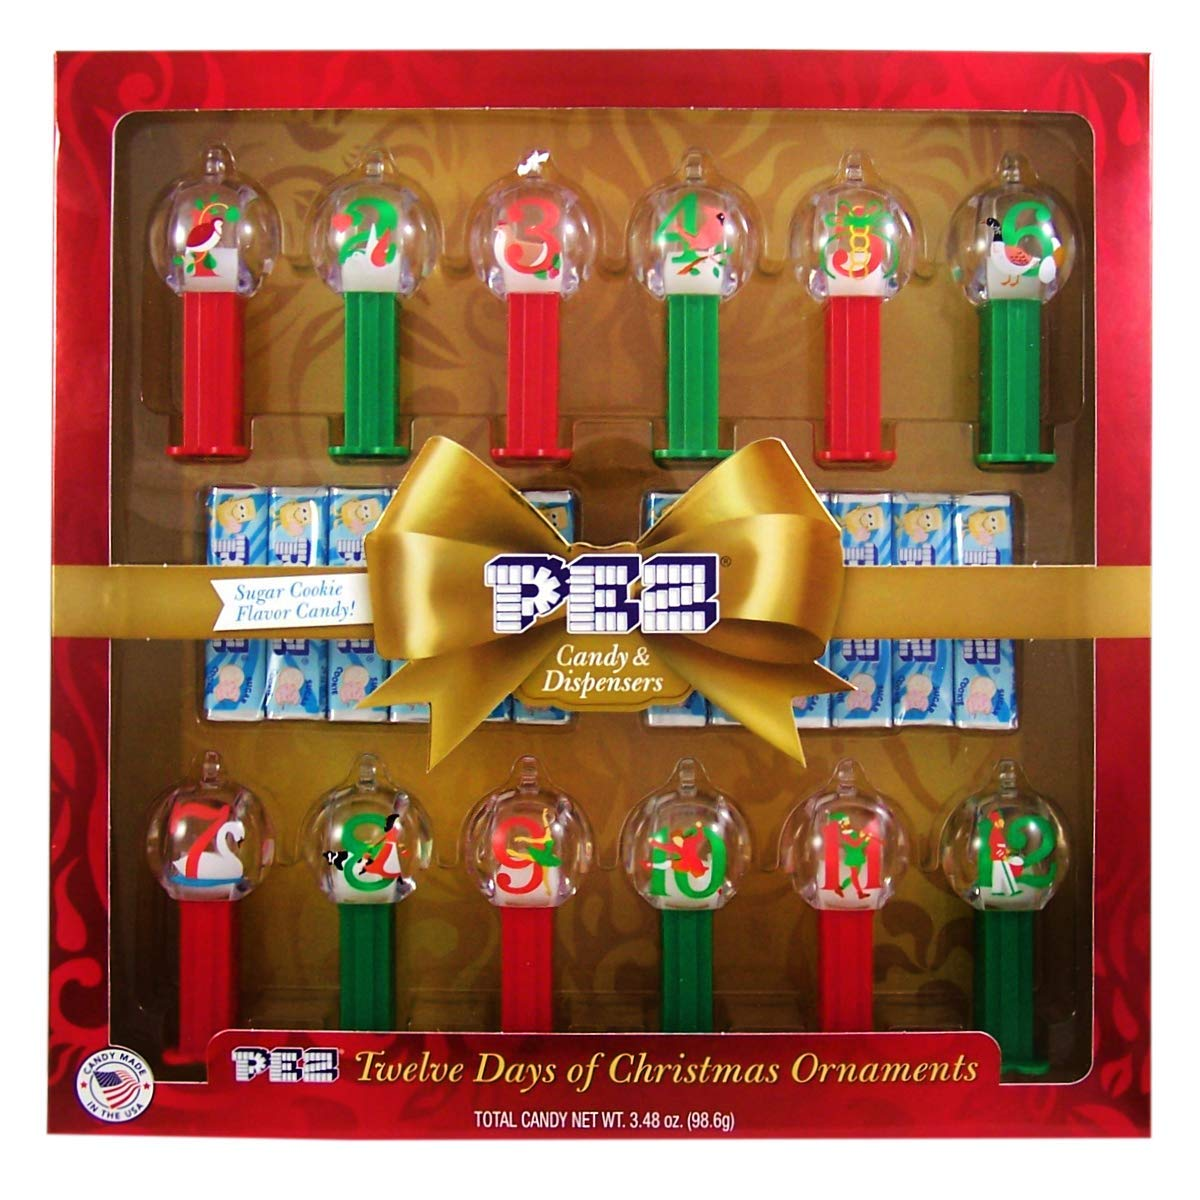 Pez 12 Days Of Christmas Themed Dispenser Ornaments With Sugar Cookie Flavored Candy Gift Set